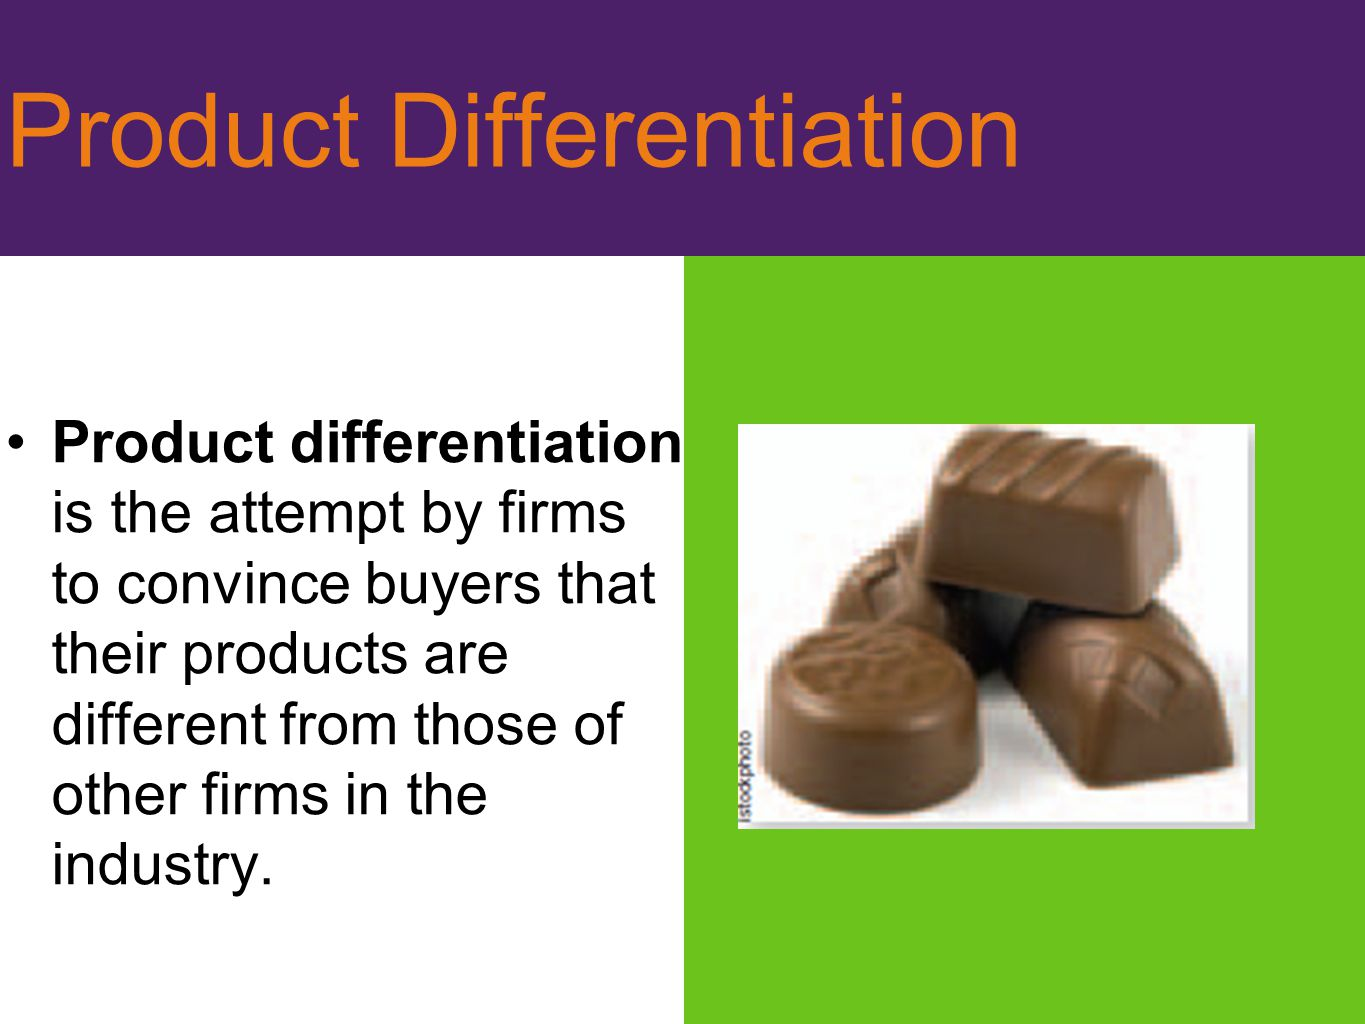 Differentiation by Style or Type As long as consumers have different tastes, producers will be able to increase profits by differentiating their products to suit those tastes.